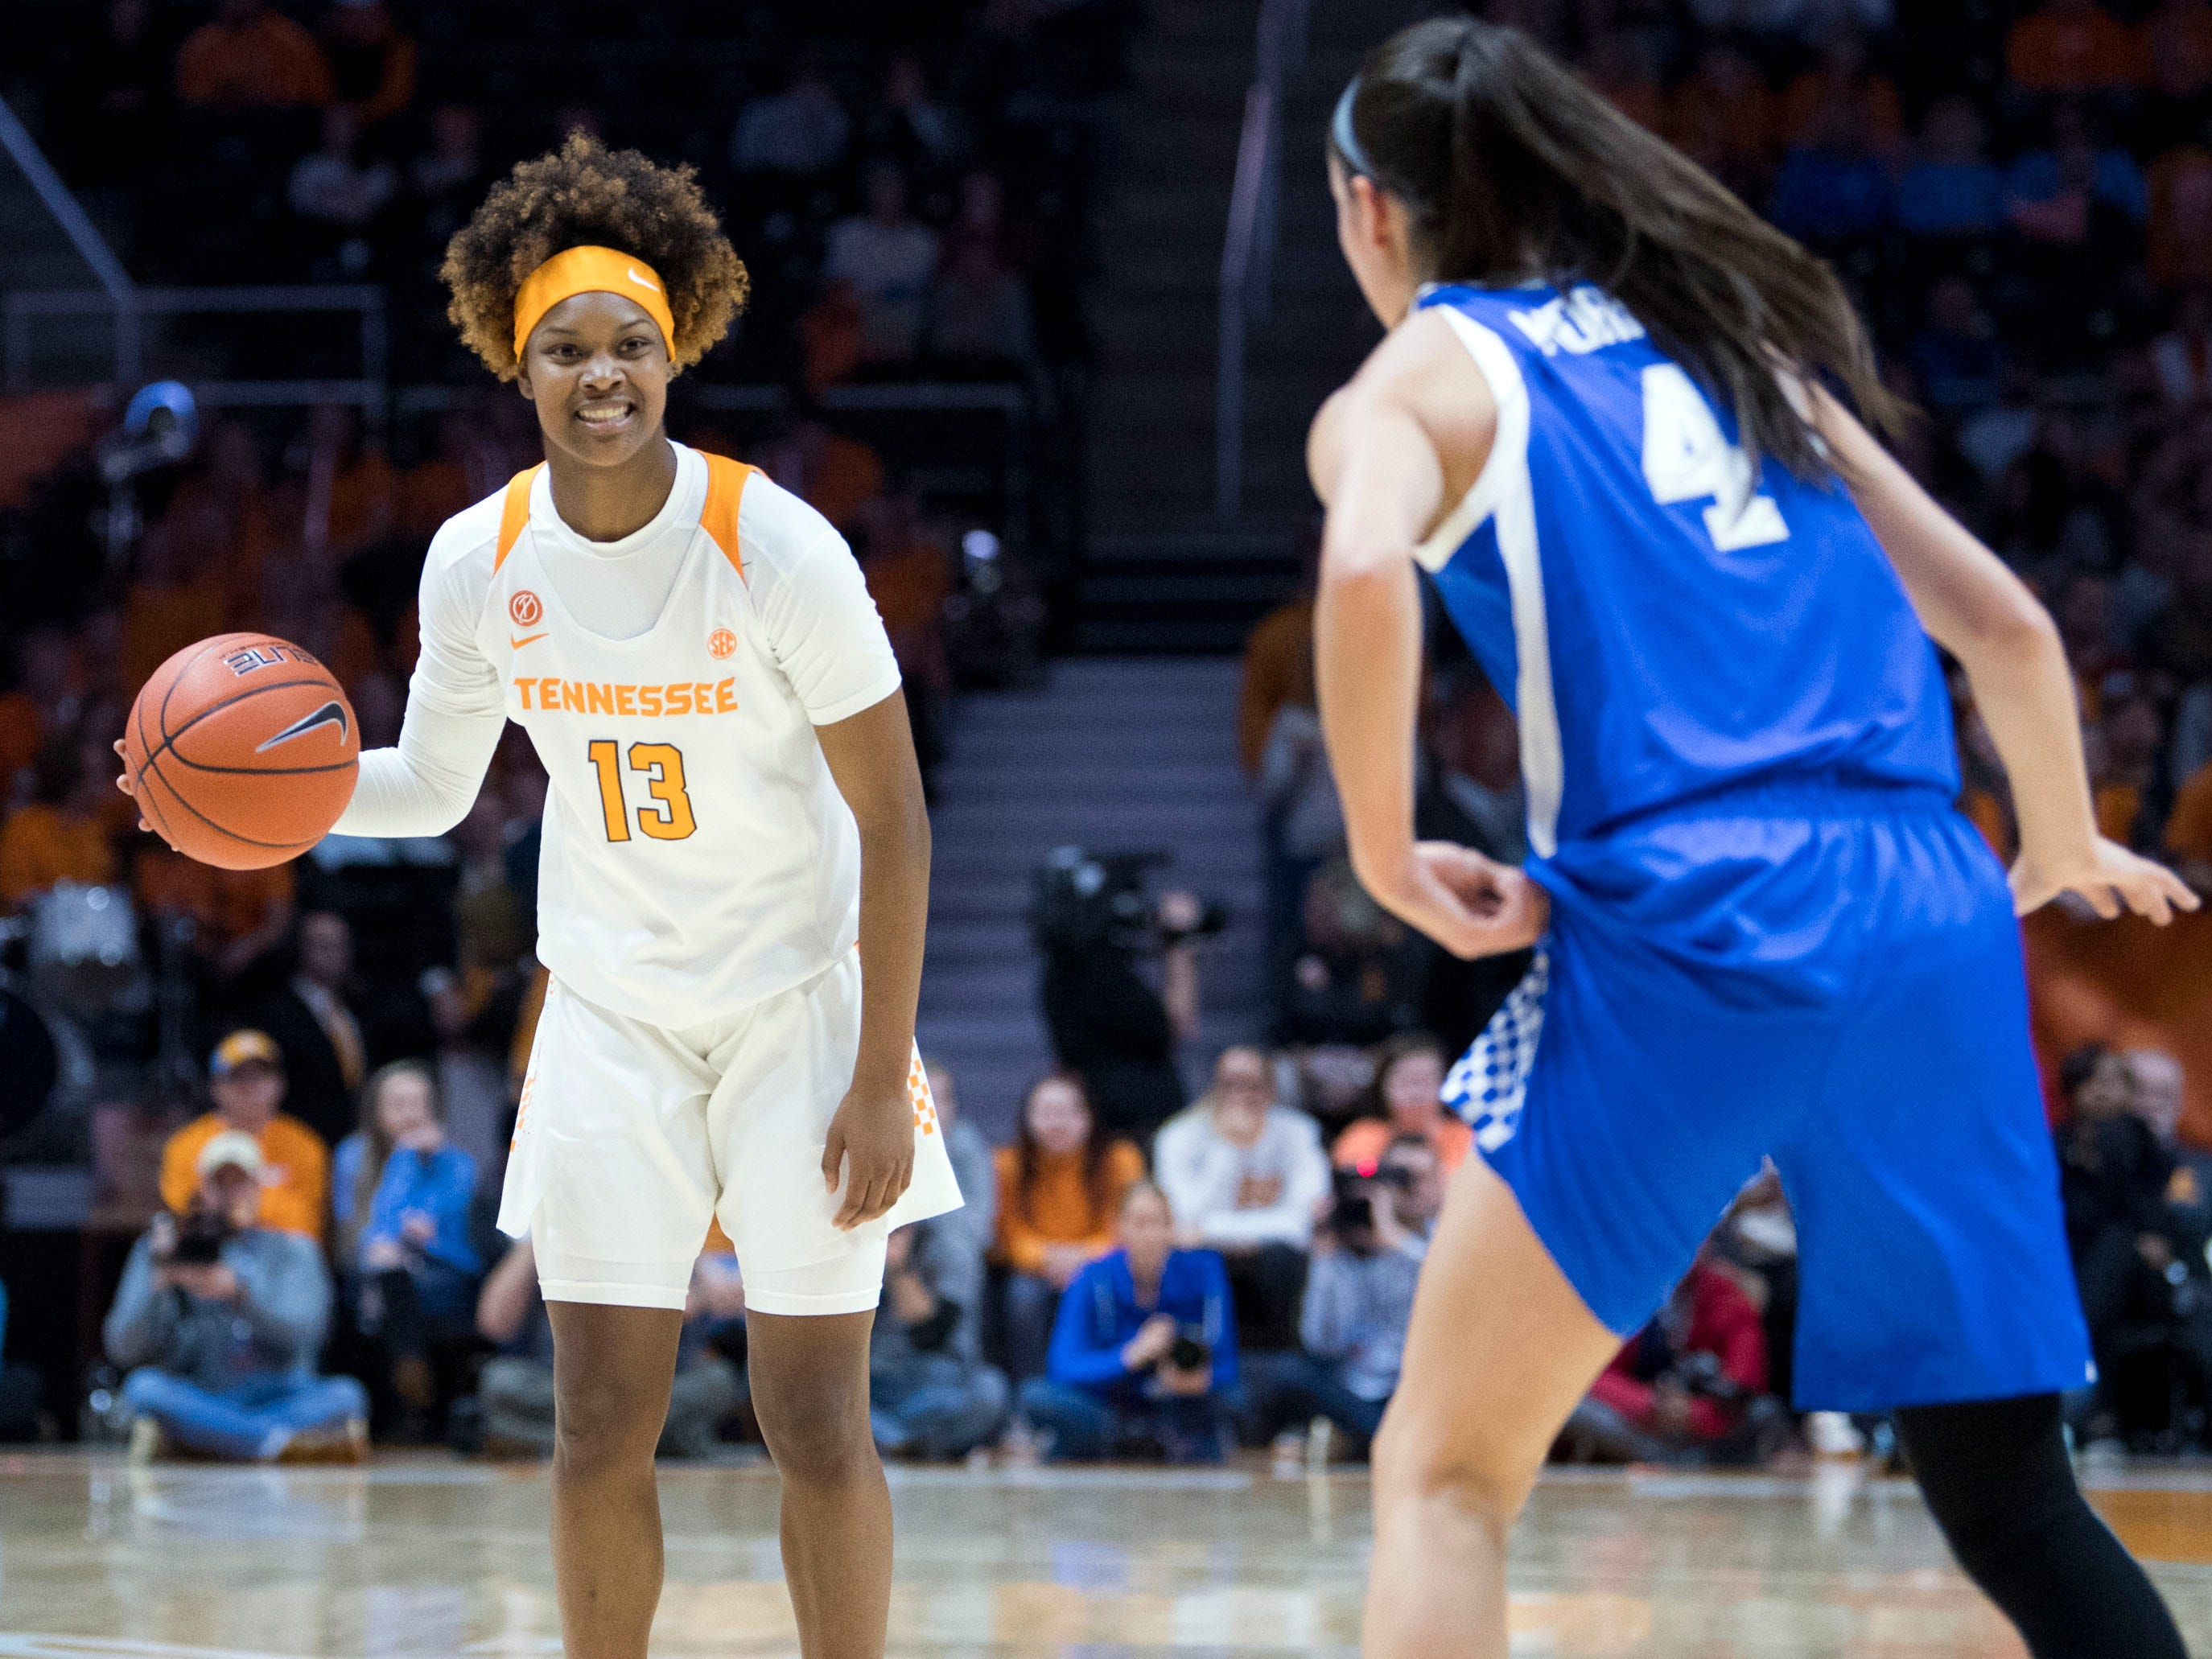 Tennessee's Jazmine Massengill (13) smiles as Kentucky's Maci Morris (4) approaches on Thursday, January 10, 2019.